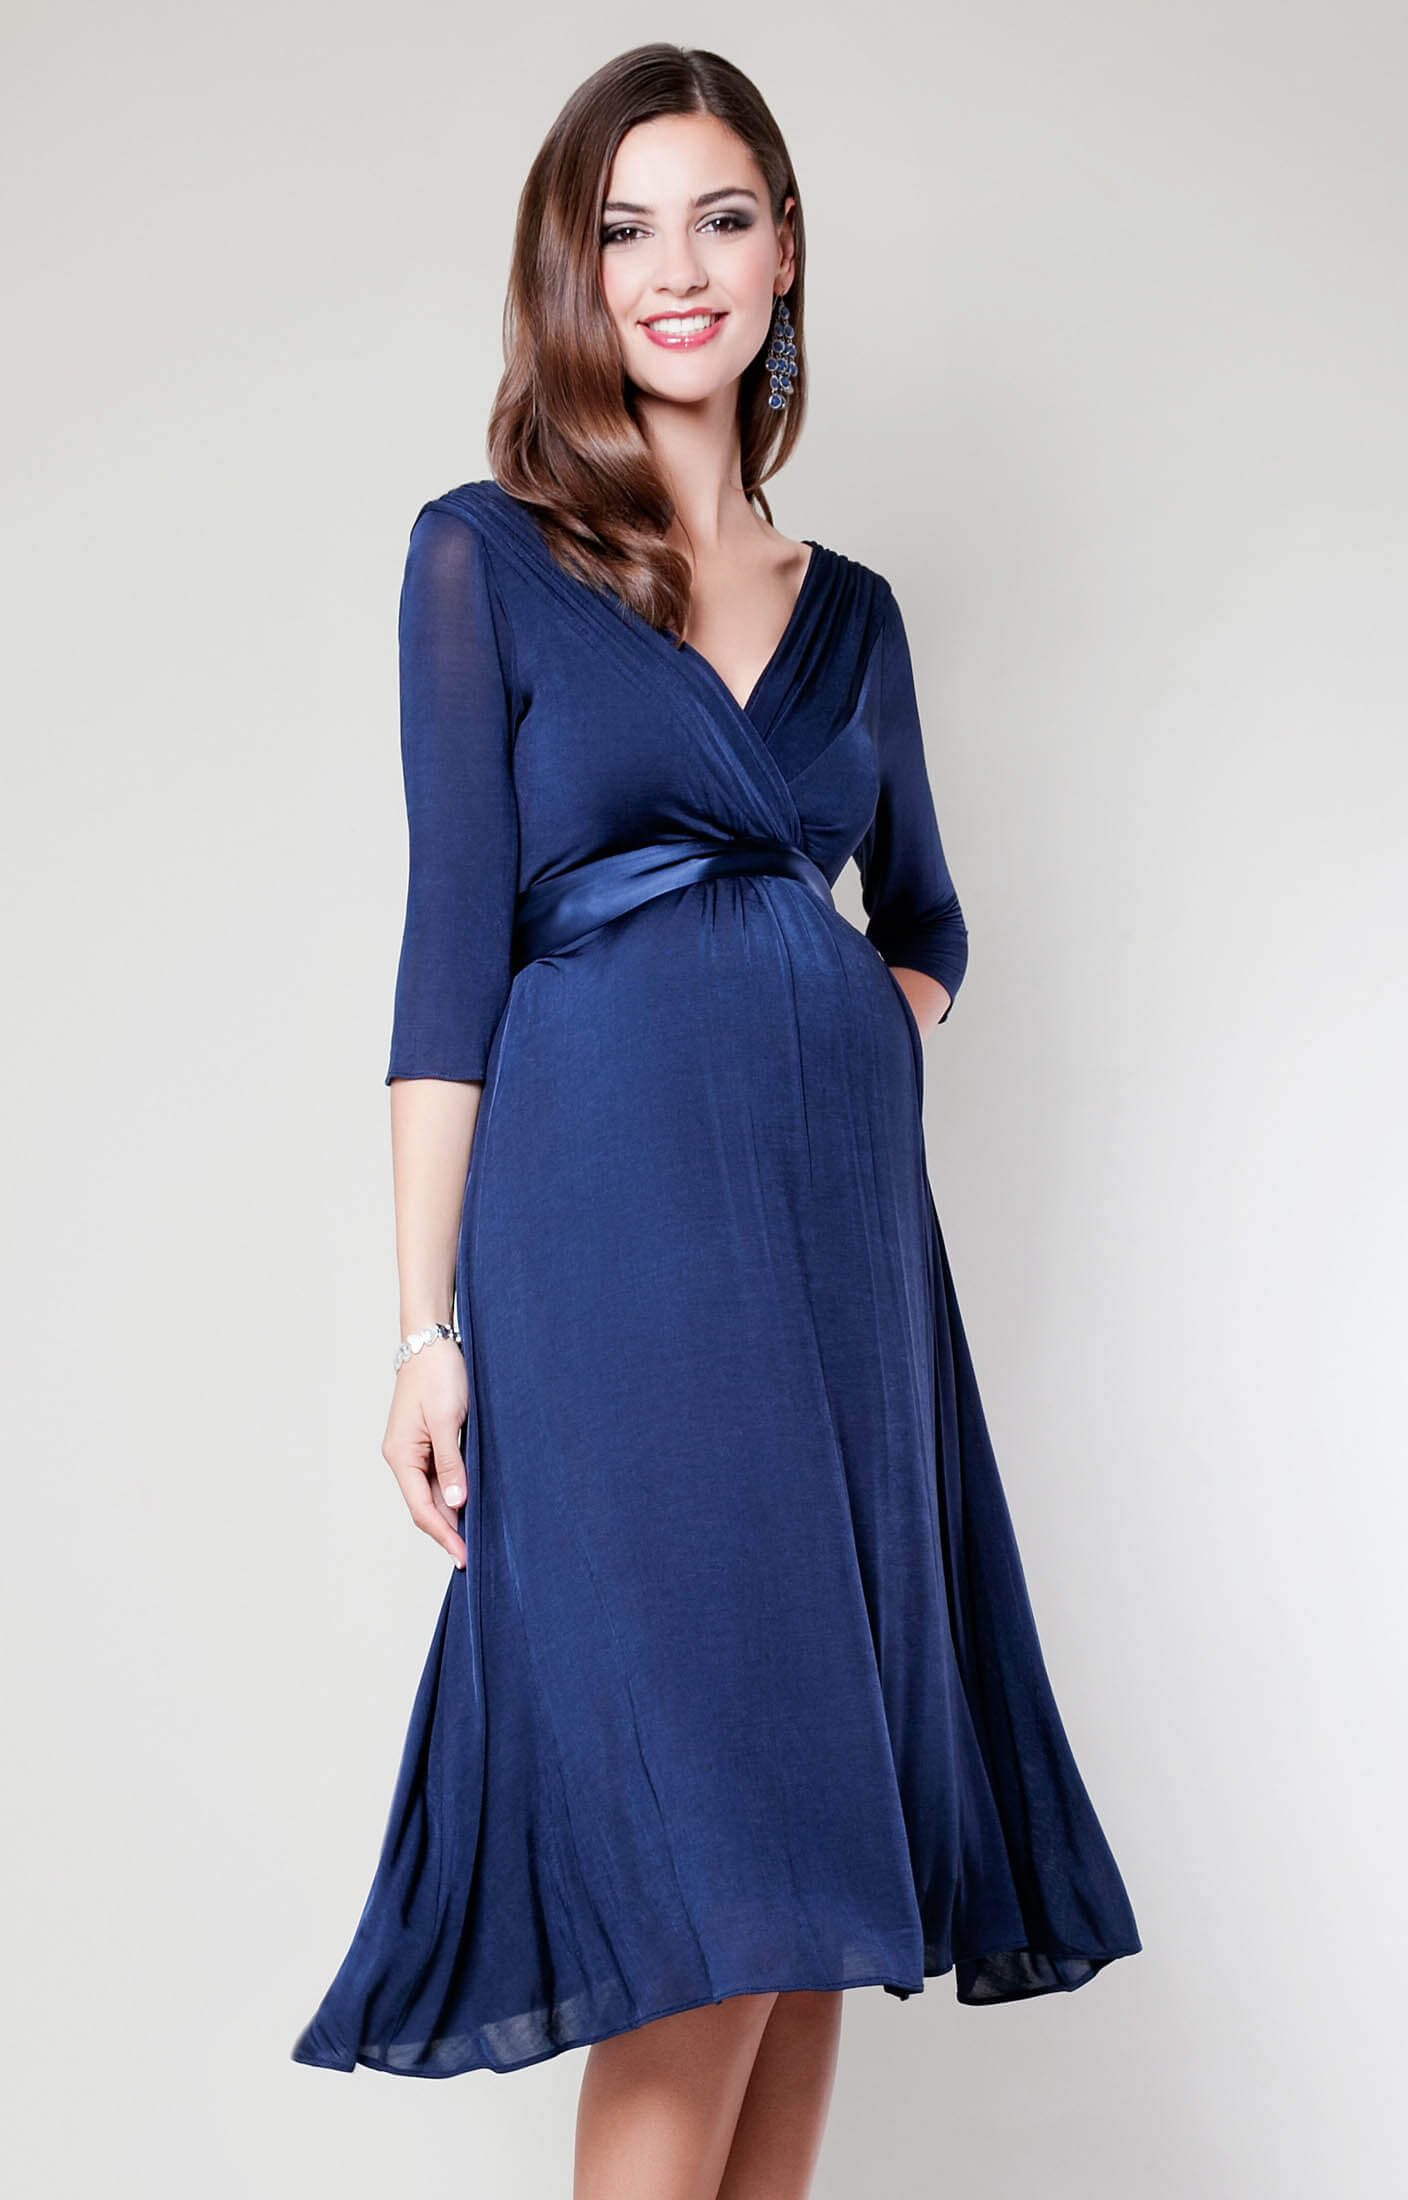 Willow maternity dress midnight blue maternity wedding dresses willow maternity dress midnight blue by tiffany rose ombrellifo Gallery